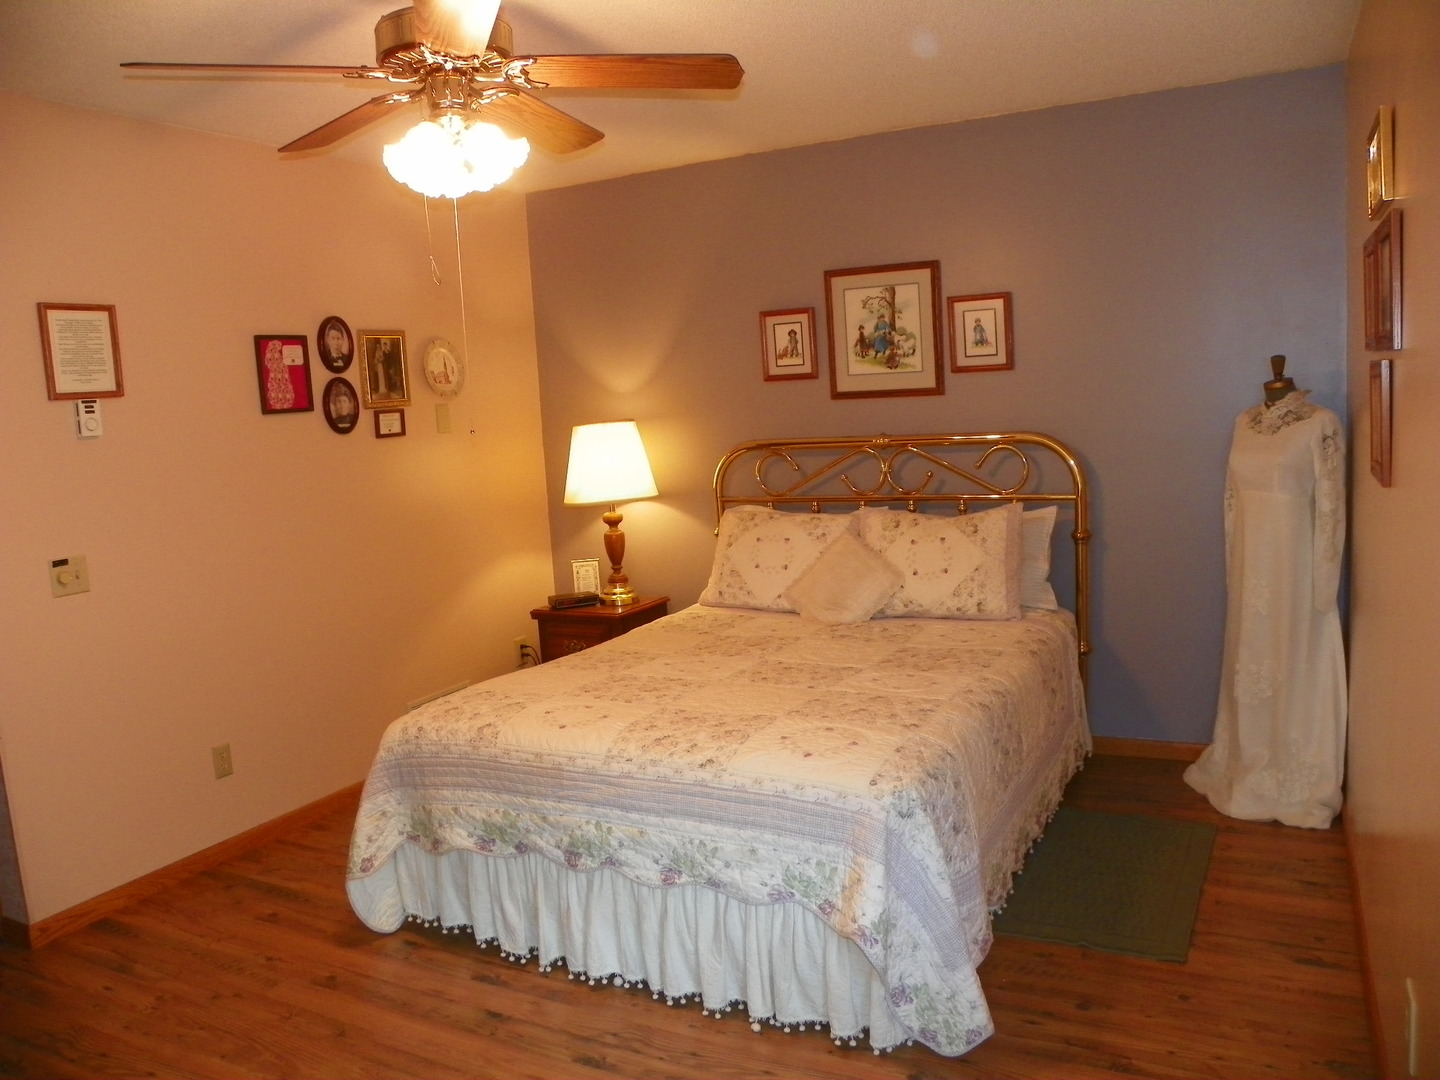 A bedroom with a large bed in a room at Pleasant Lake Bed & Breakfast.